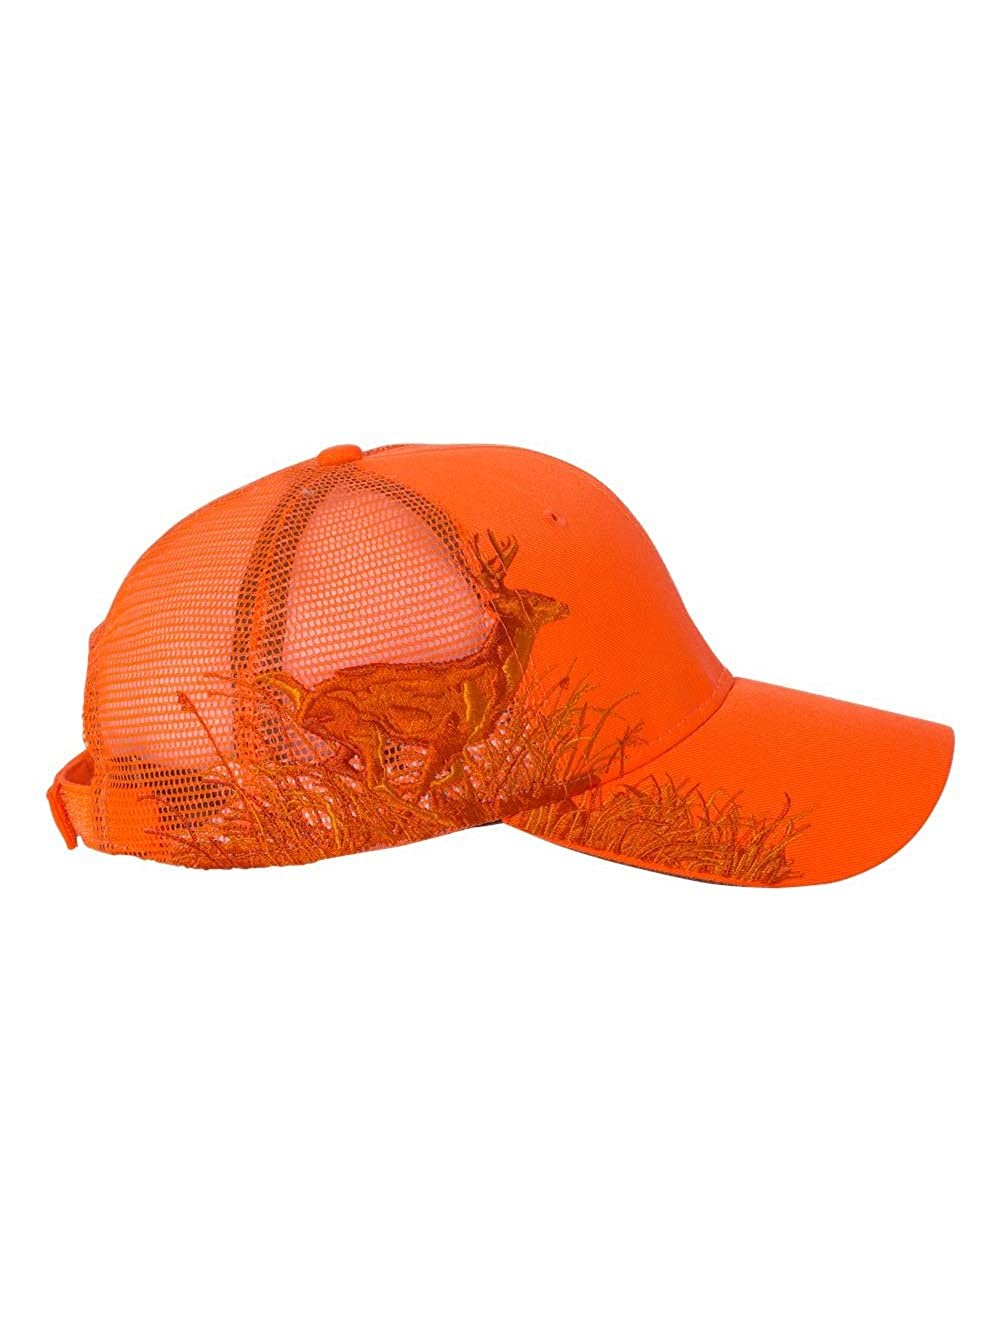 Dri Duck Running Buck Mesh Back Blaze Orange Cap  1541595593-170521 ... ff2d957a543